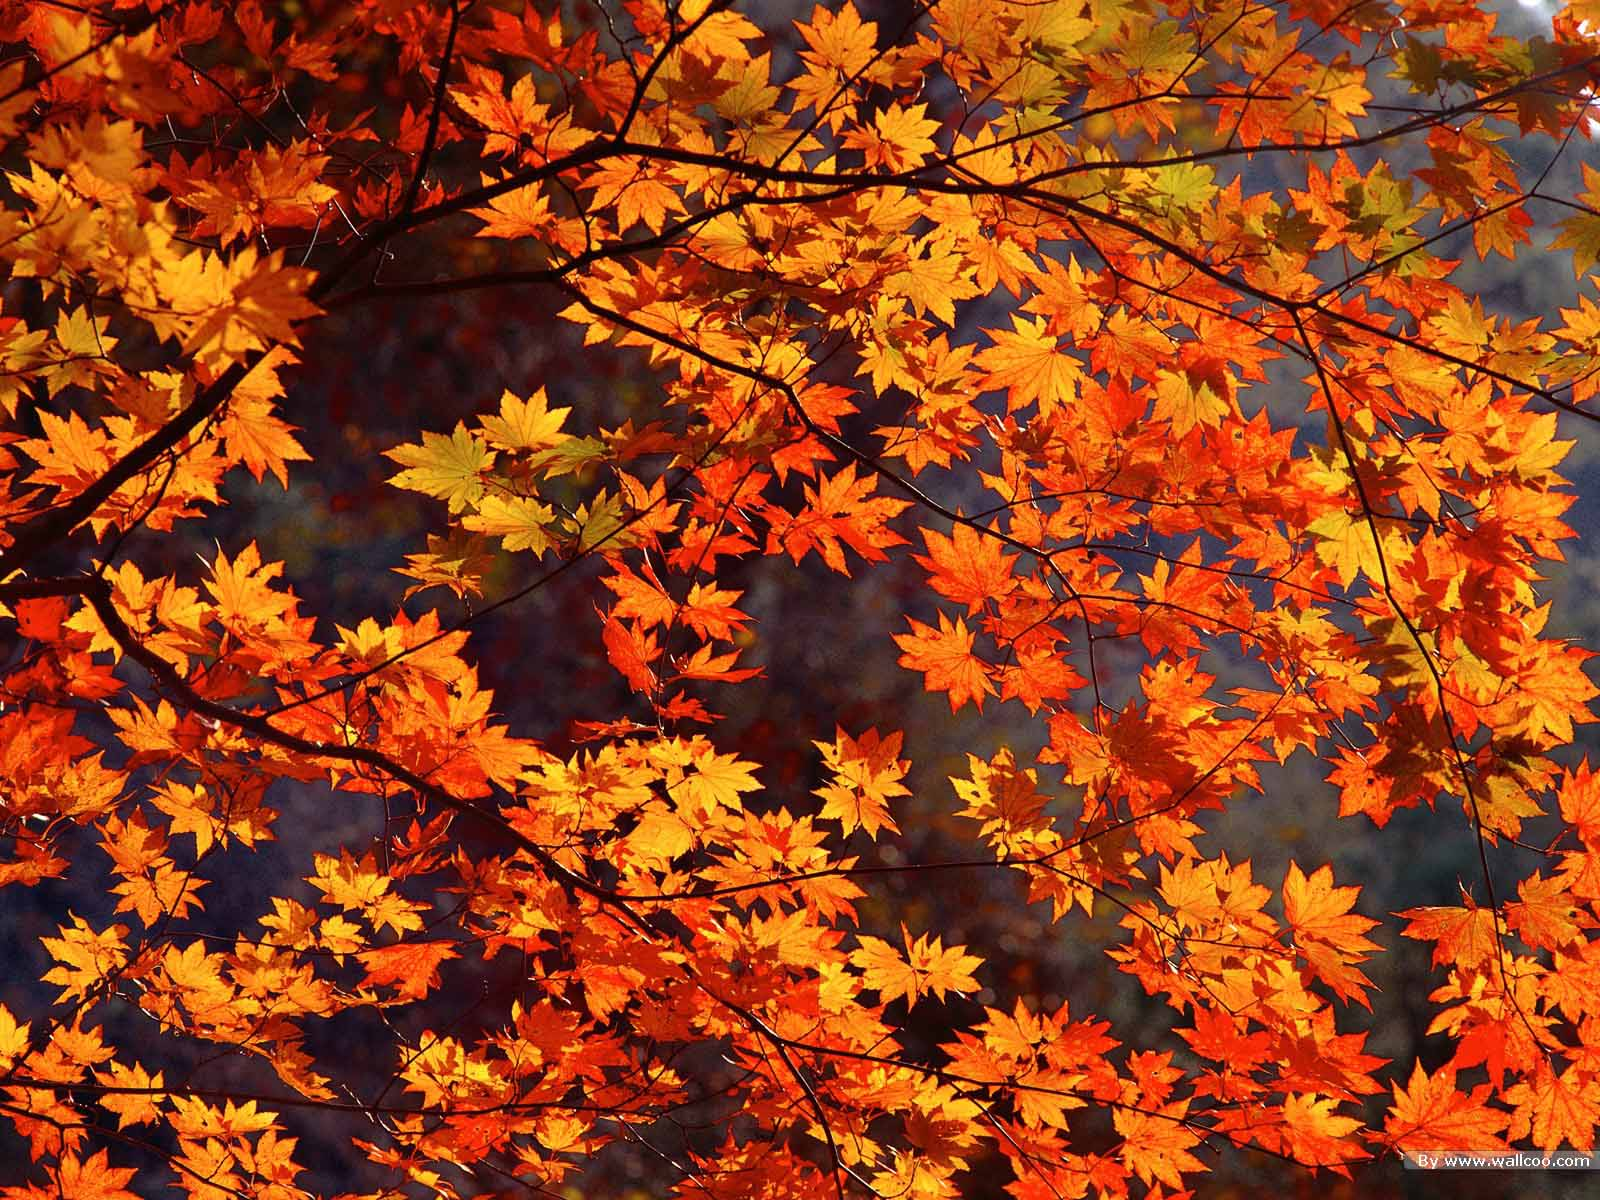 Autumn Leaves Live Wallpaper   Fall Computer Wallpaper 1600x1200